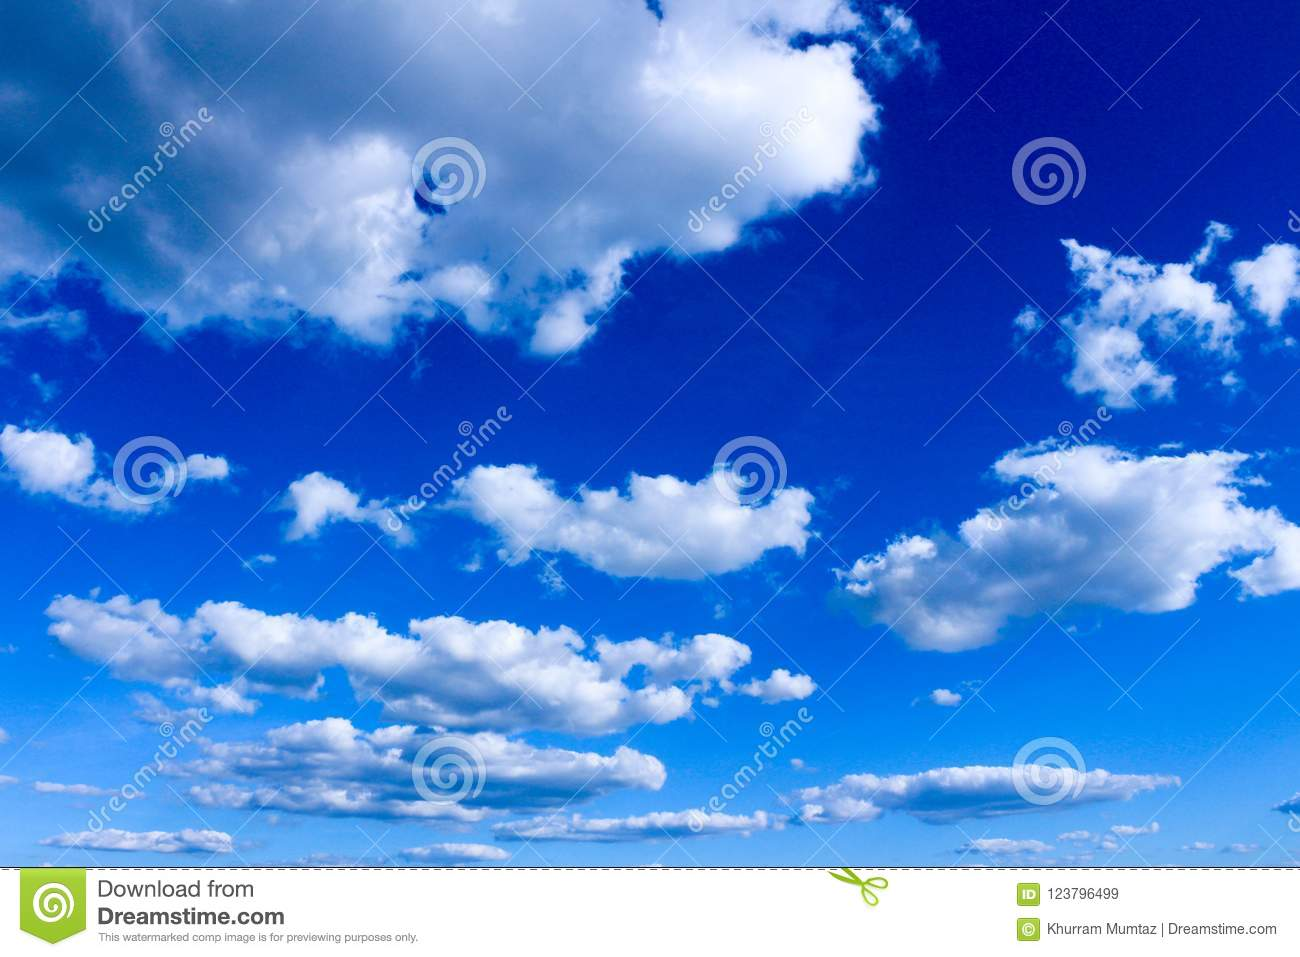 Germany sky overcast with clouds, blue sky with fainted and dispersed clouds